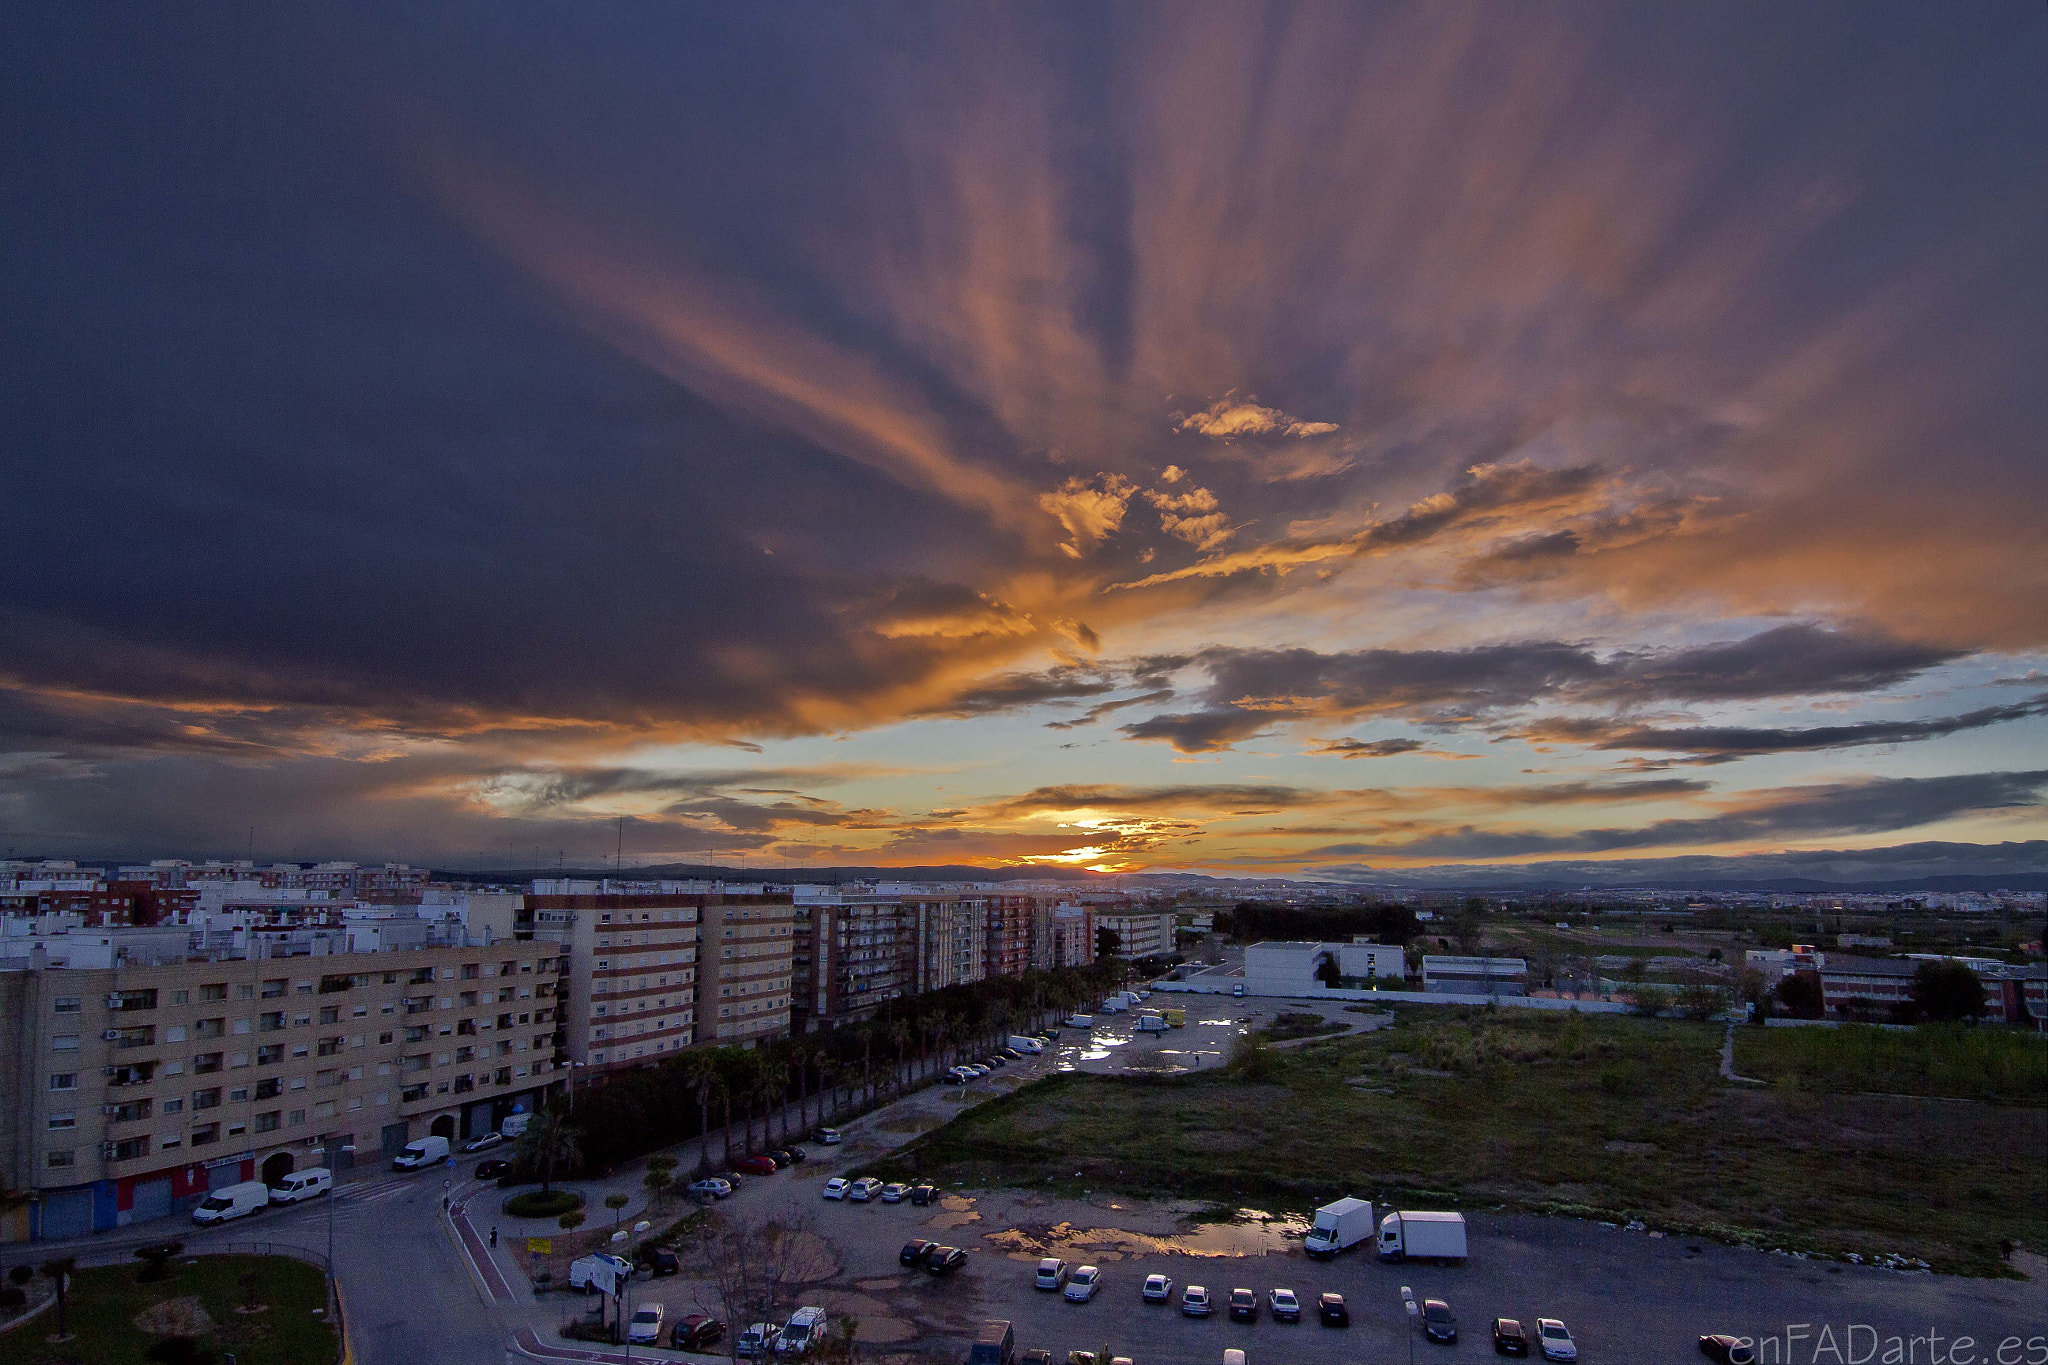 Photograph FROM MY BALCONY - APOCALIPTIC by Francisco Alcantud on 500px